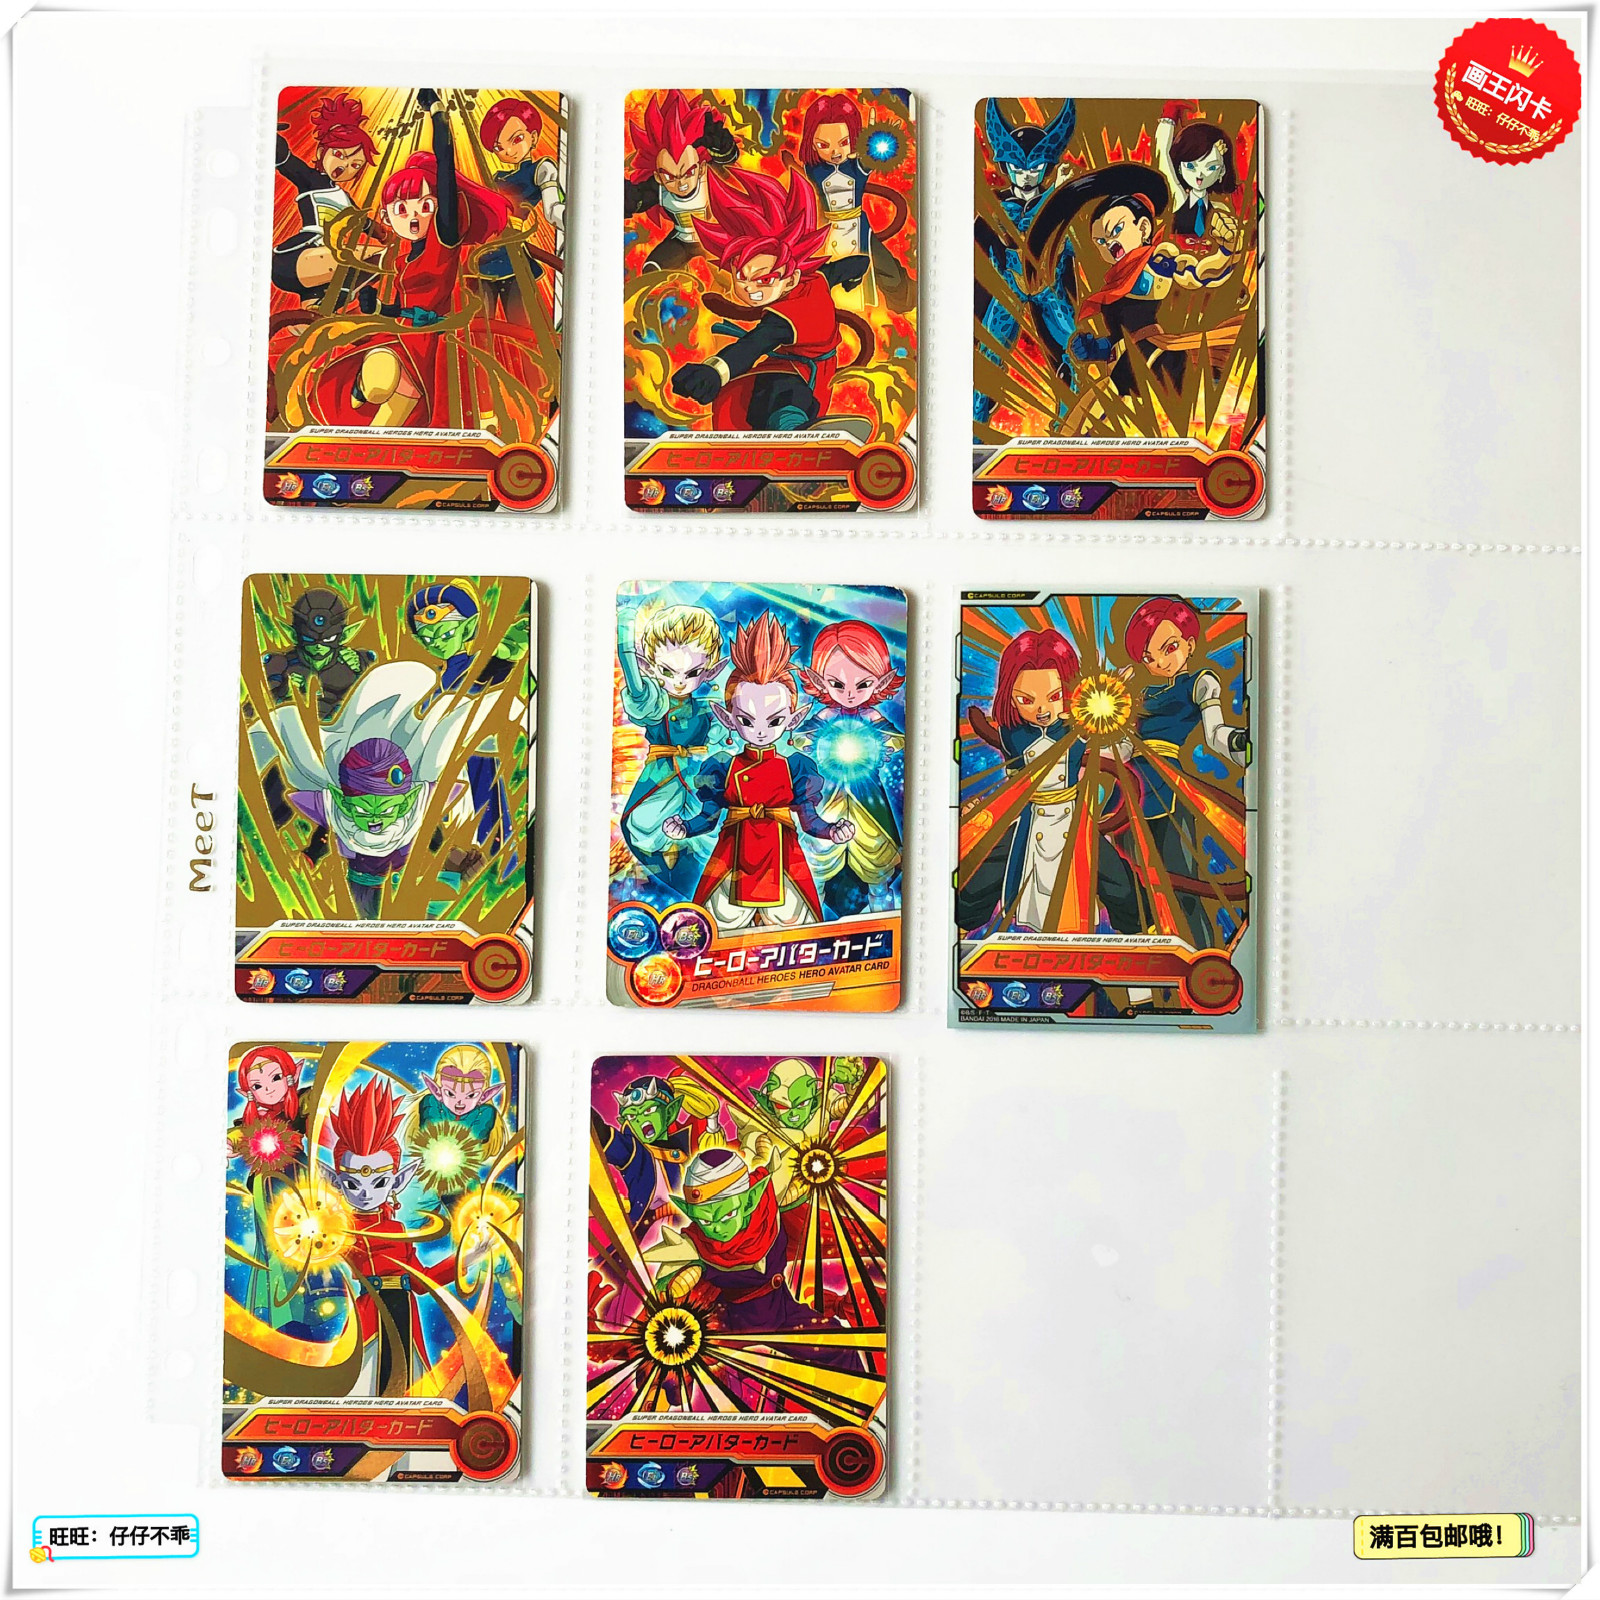 Japan Original Dragon Ball Hero Card Demon God Goku Toys Hobbies Collectibles Game Collection Anime Cards